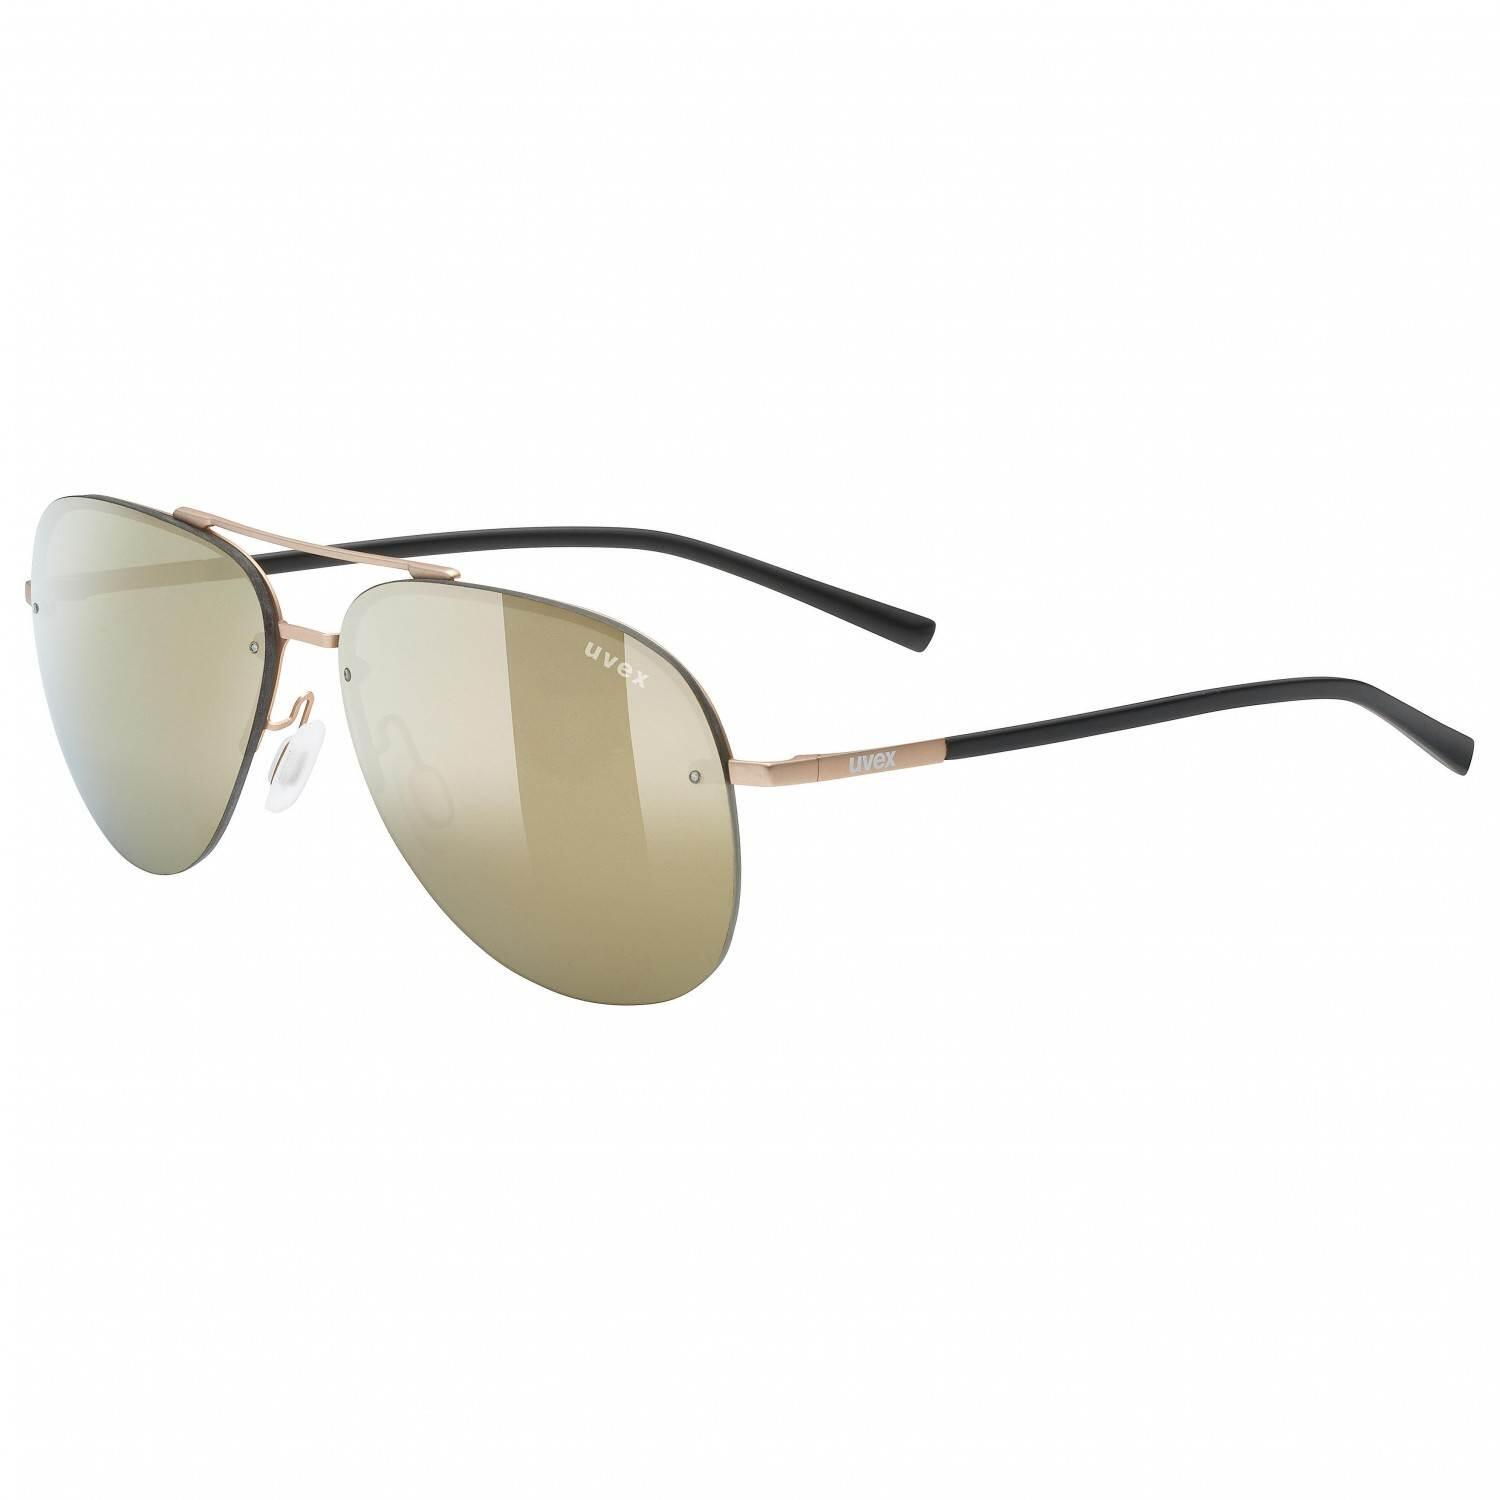 uvex-lgl-40-sportbrille-farbe-6616-gold-mat-mirror-gold-s3-